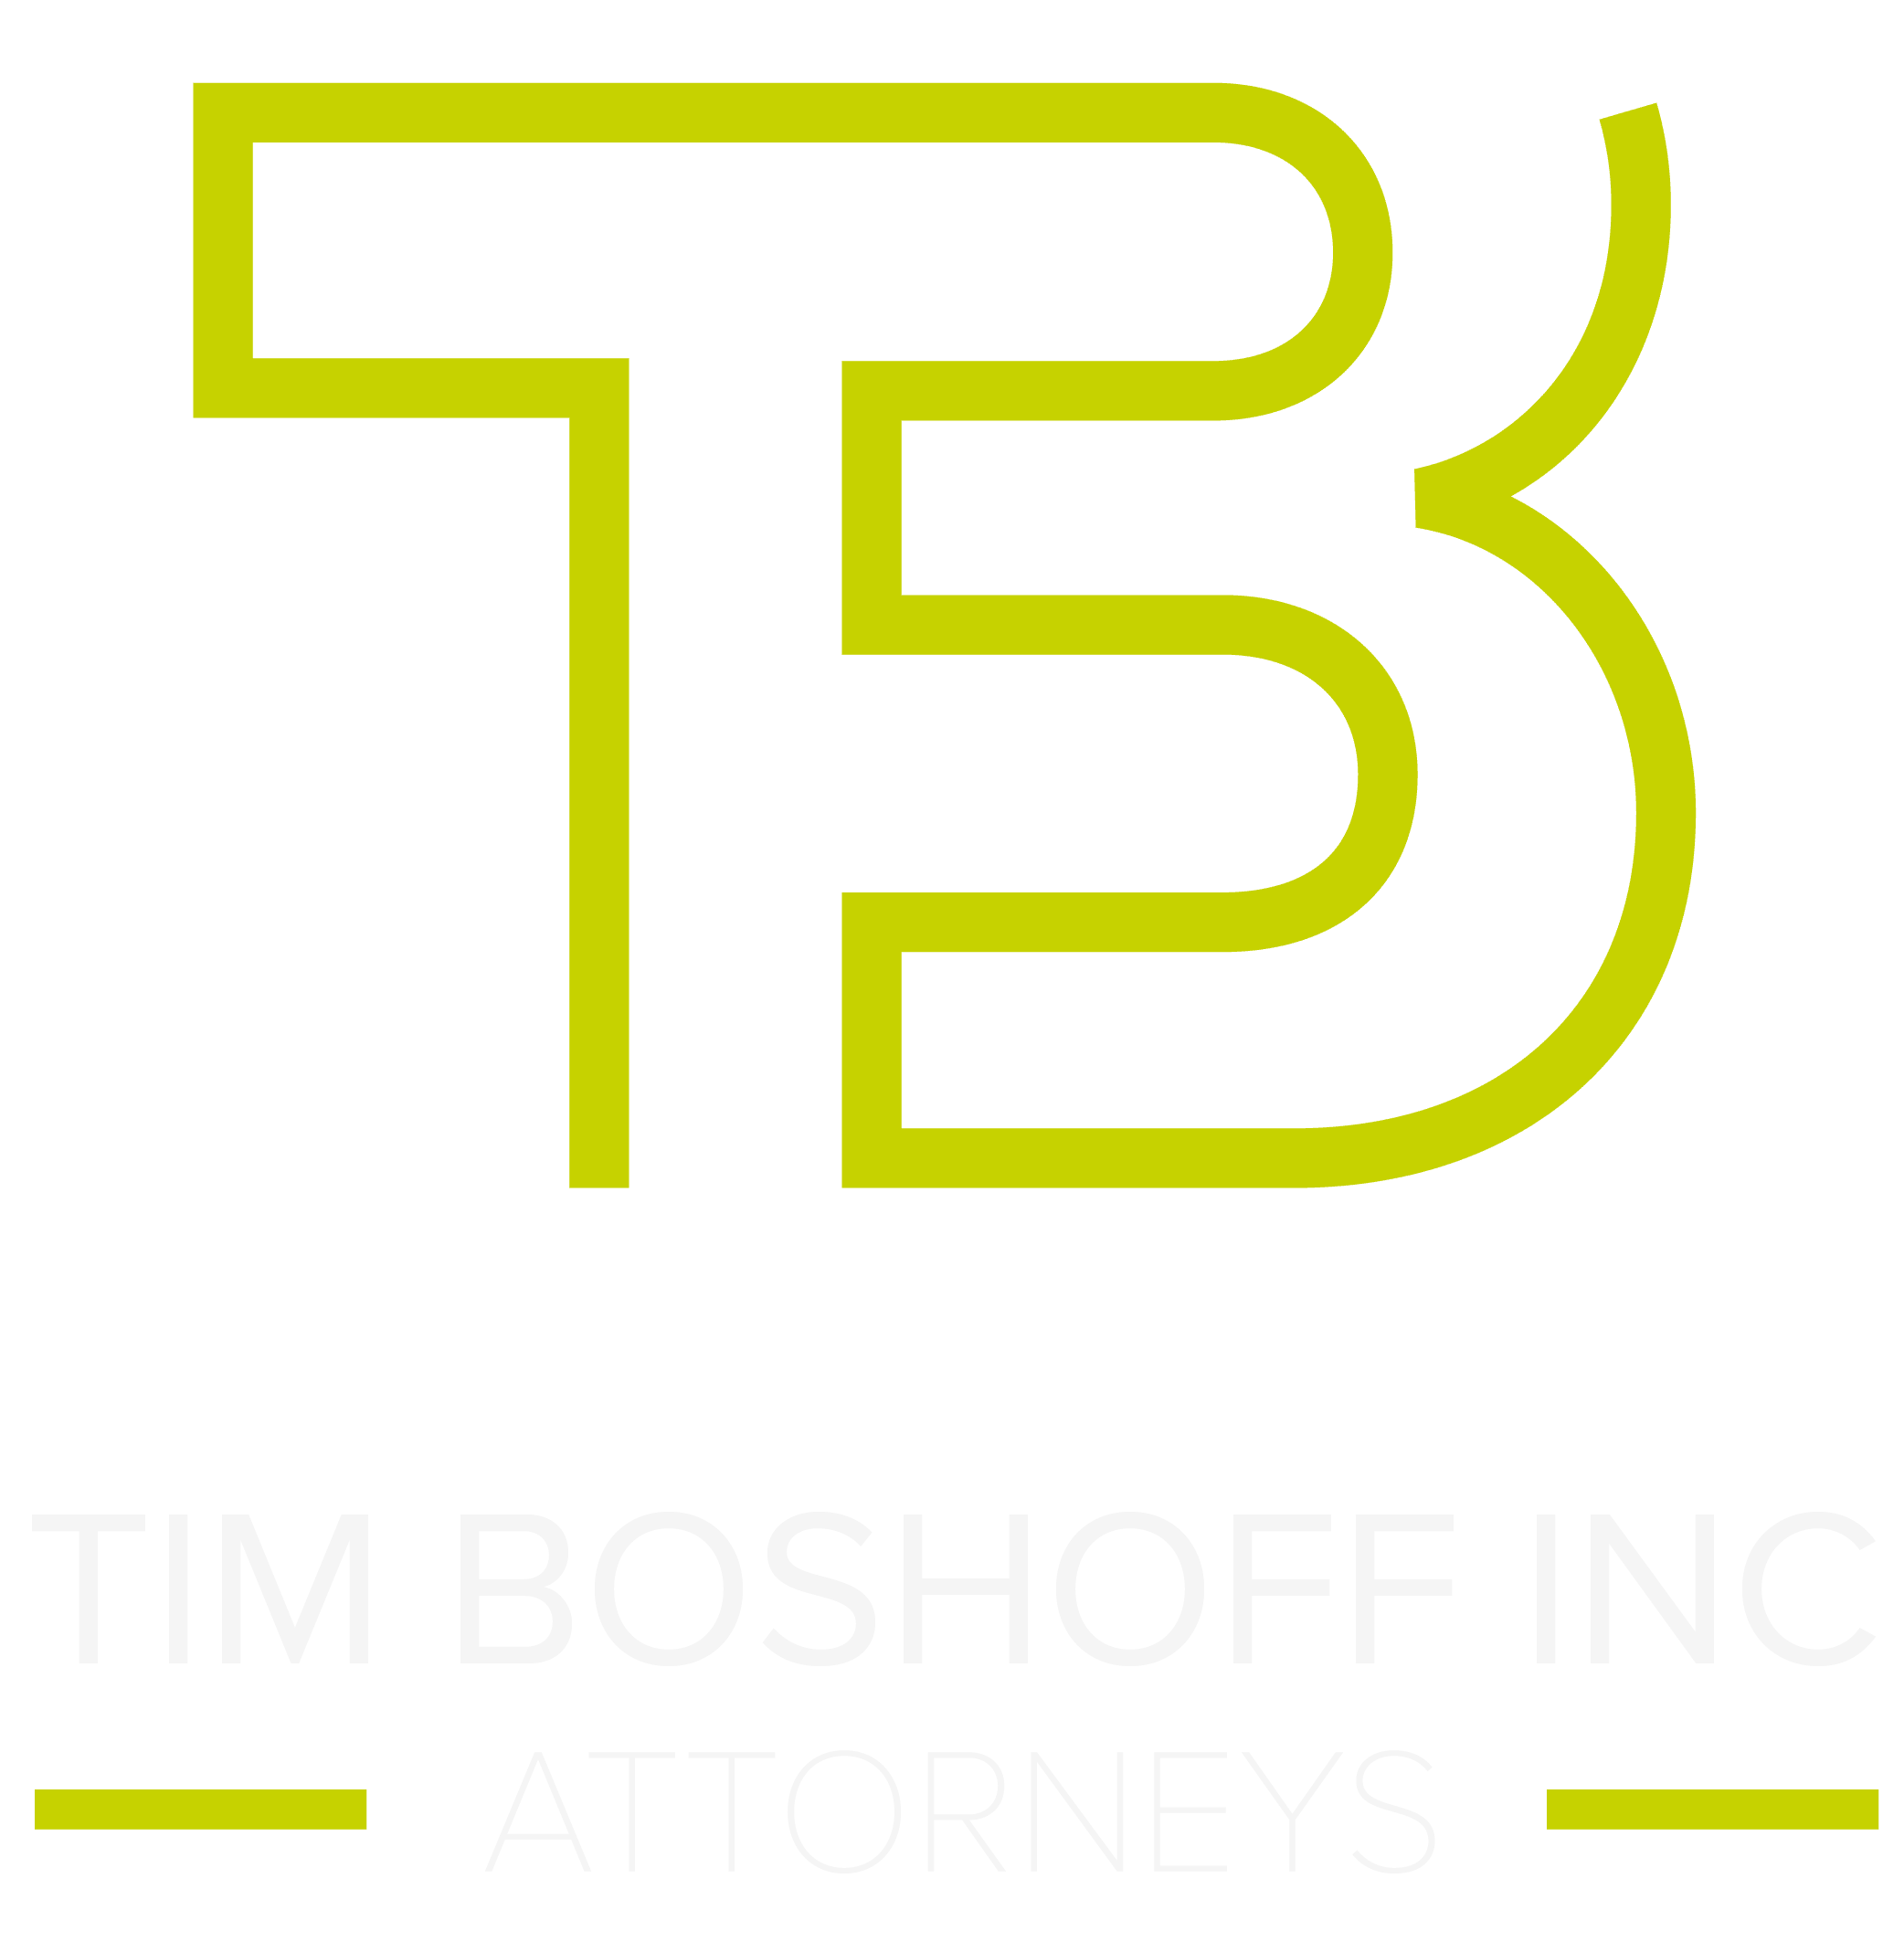 Tim Boshoff Attorneys